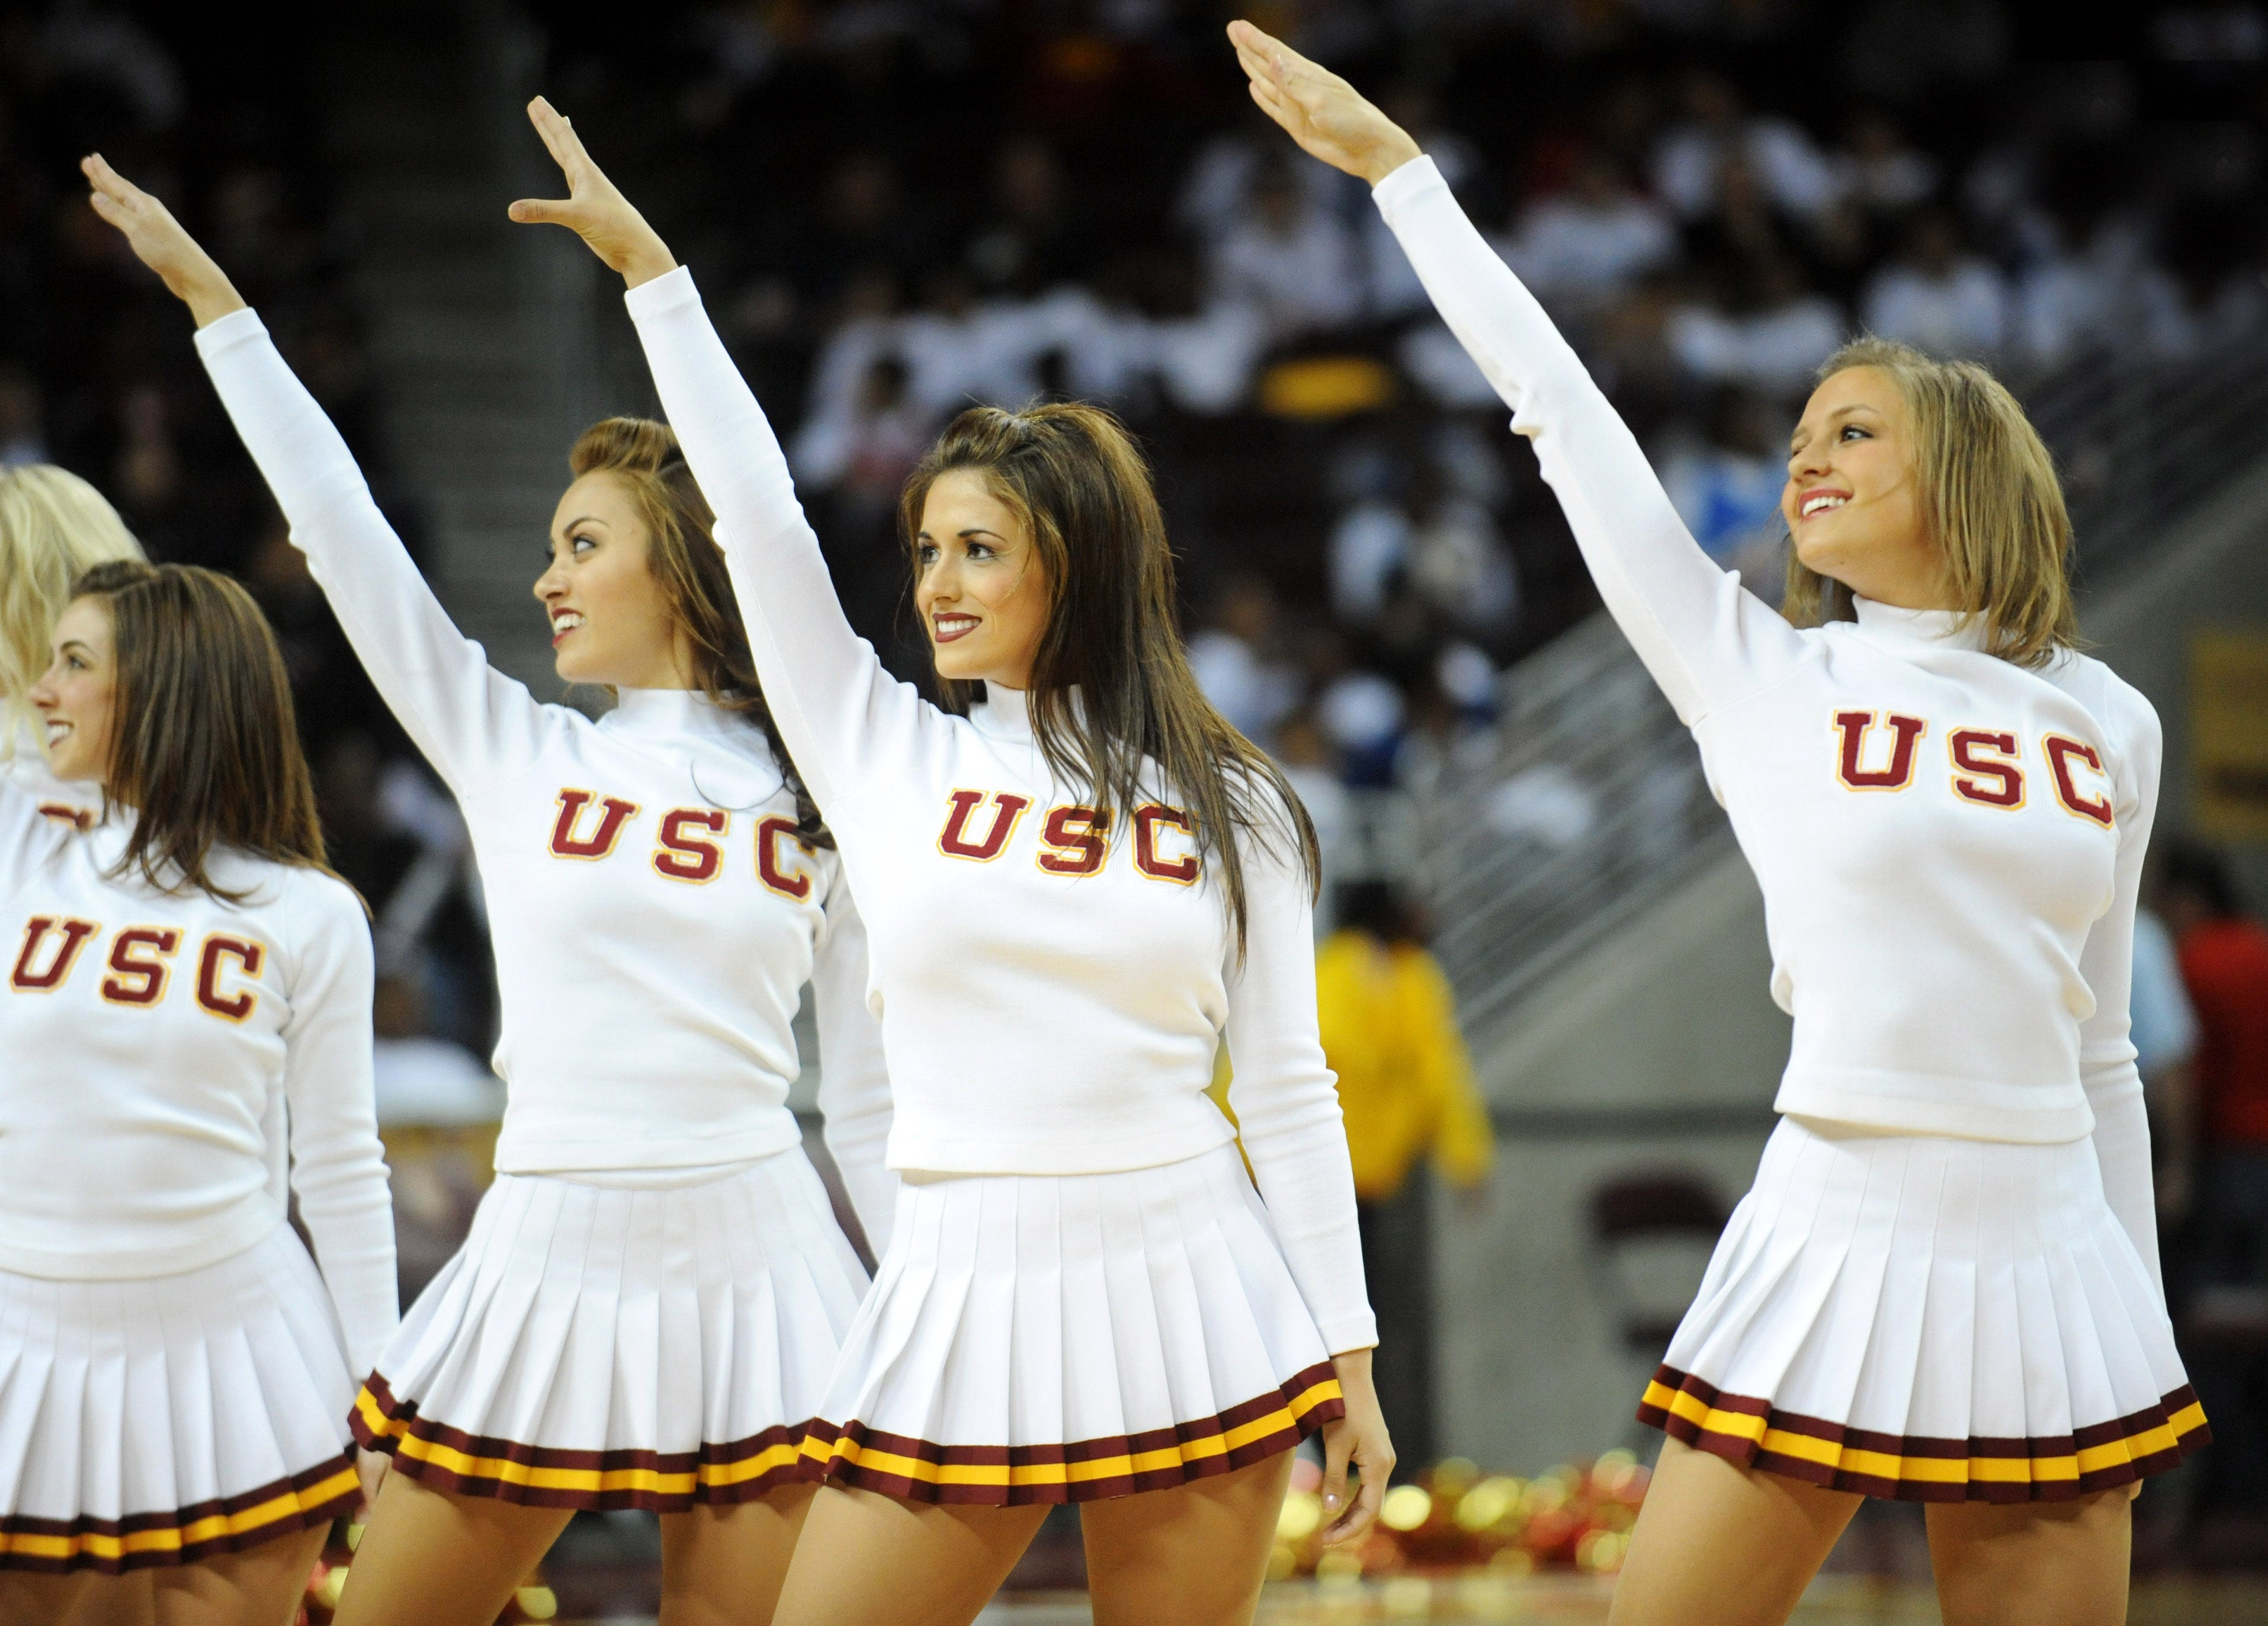 USC's decision to pull famous Song Girls from basketball games comes under fire